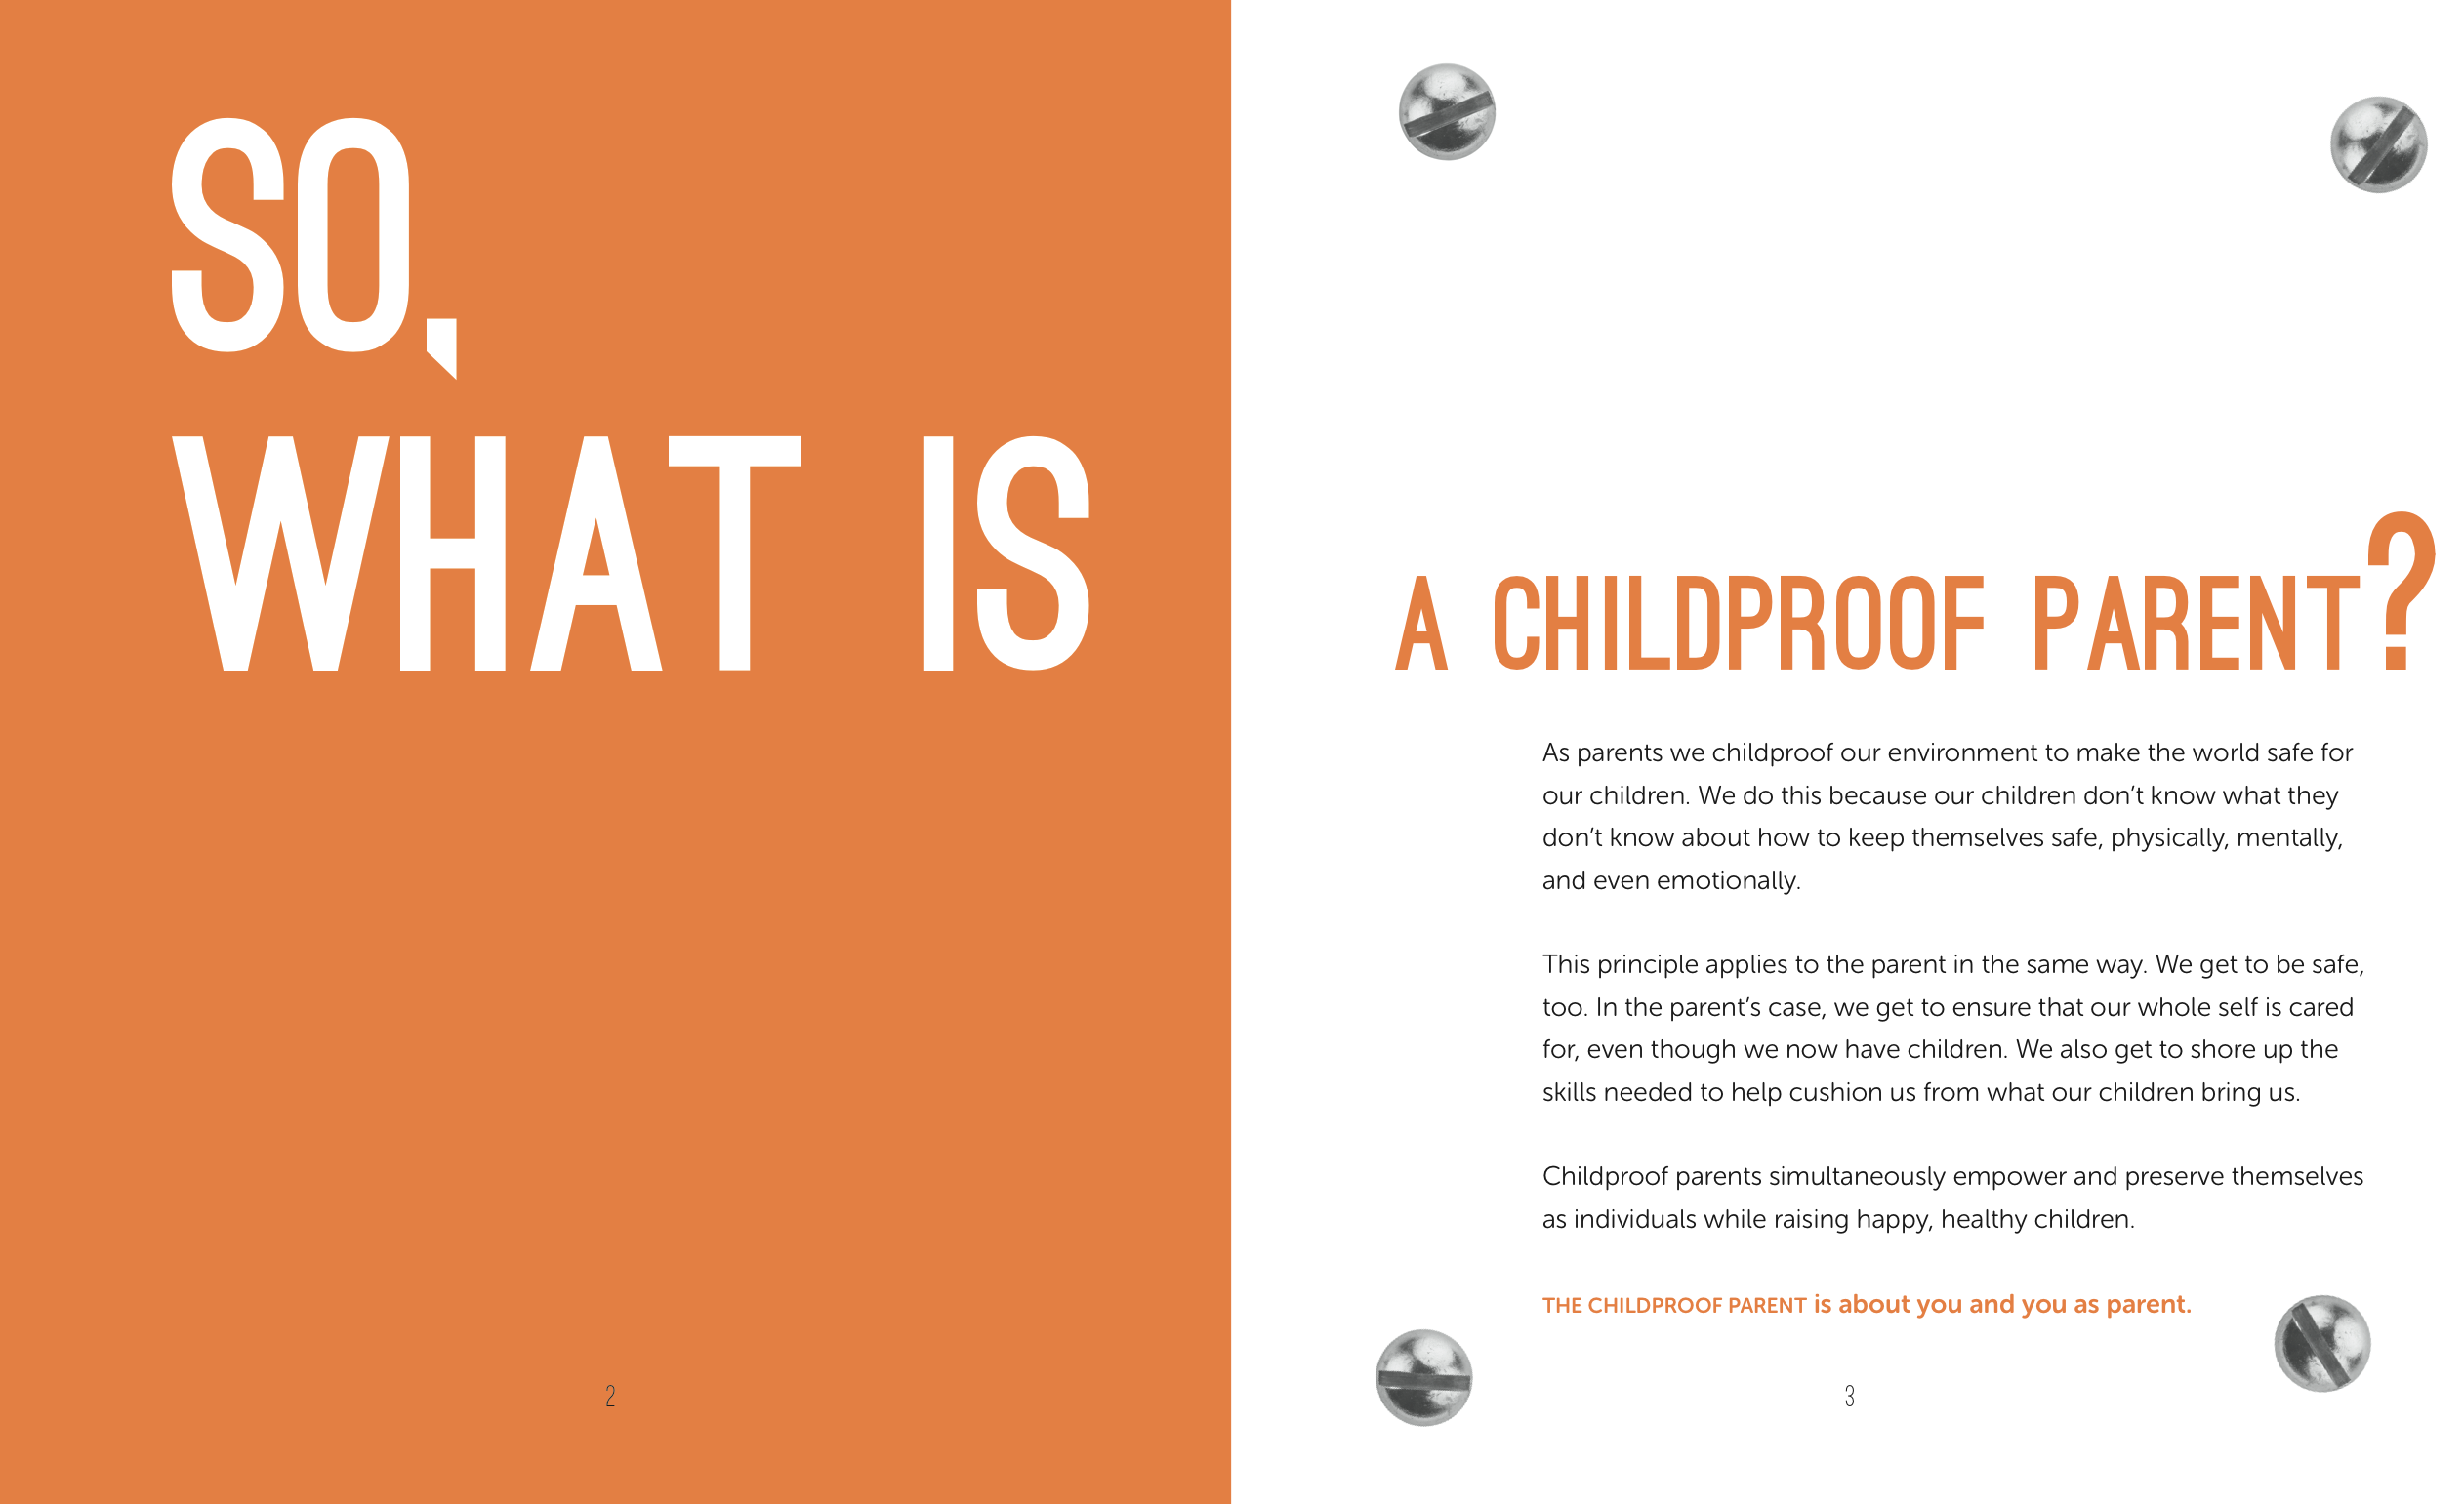 The Childproof Parent